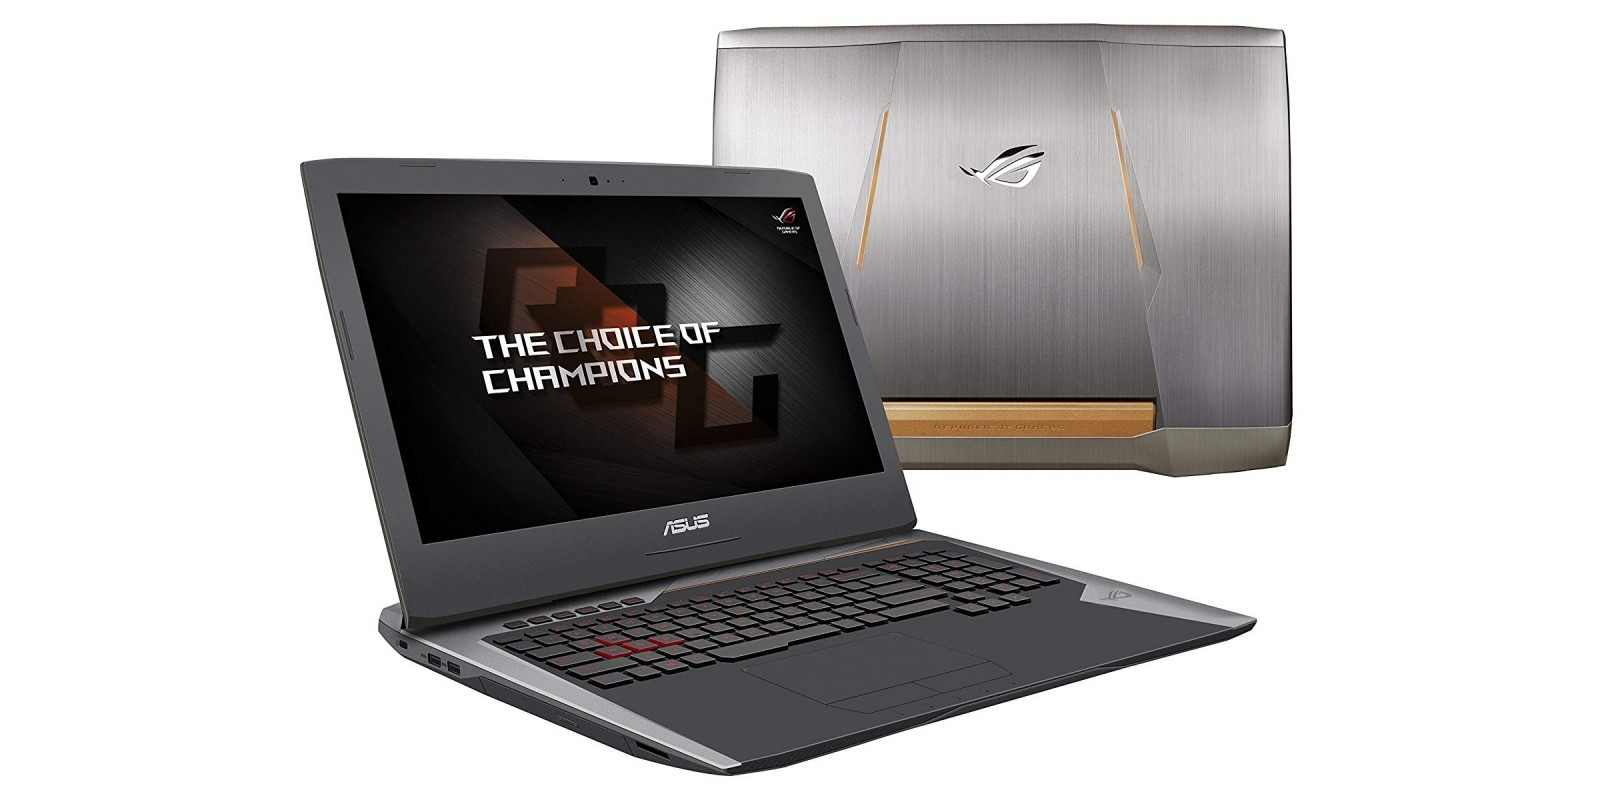 ASUS ROG G752VY-DH72 17-Inch Gaming Laptop Champion